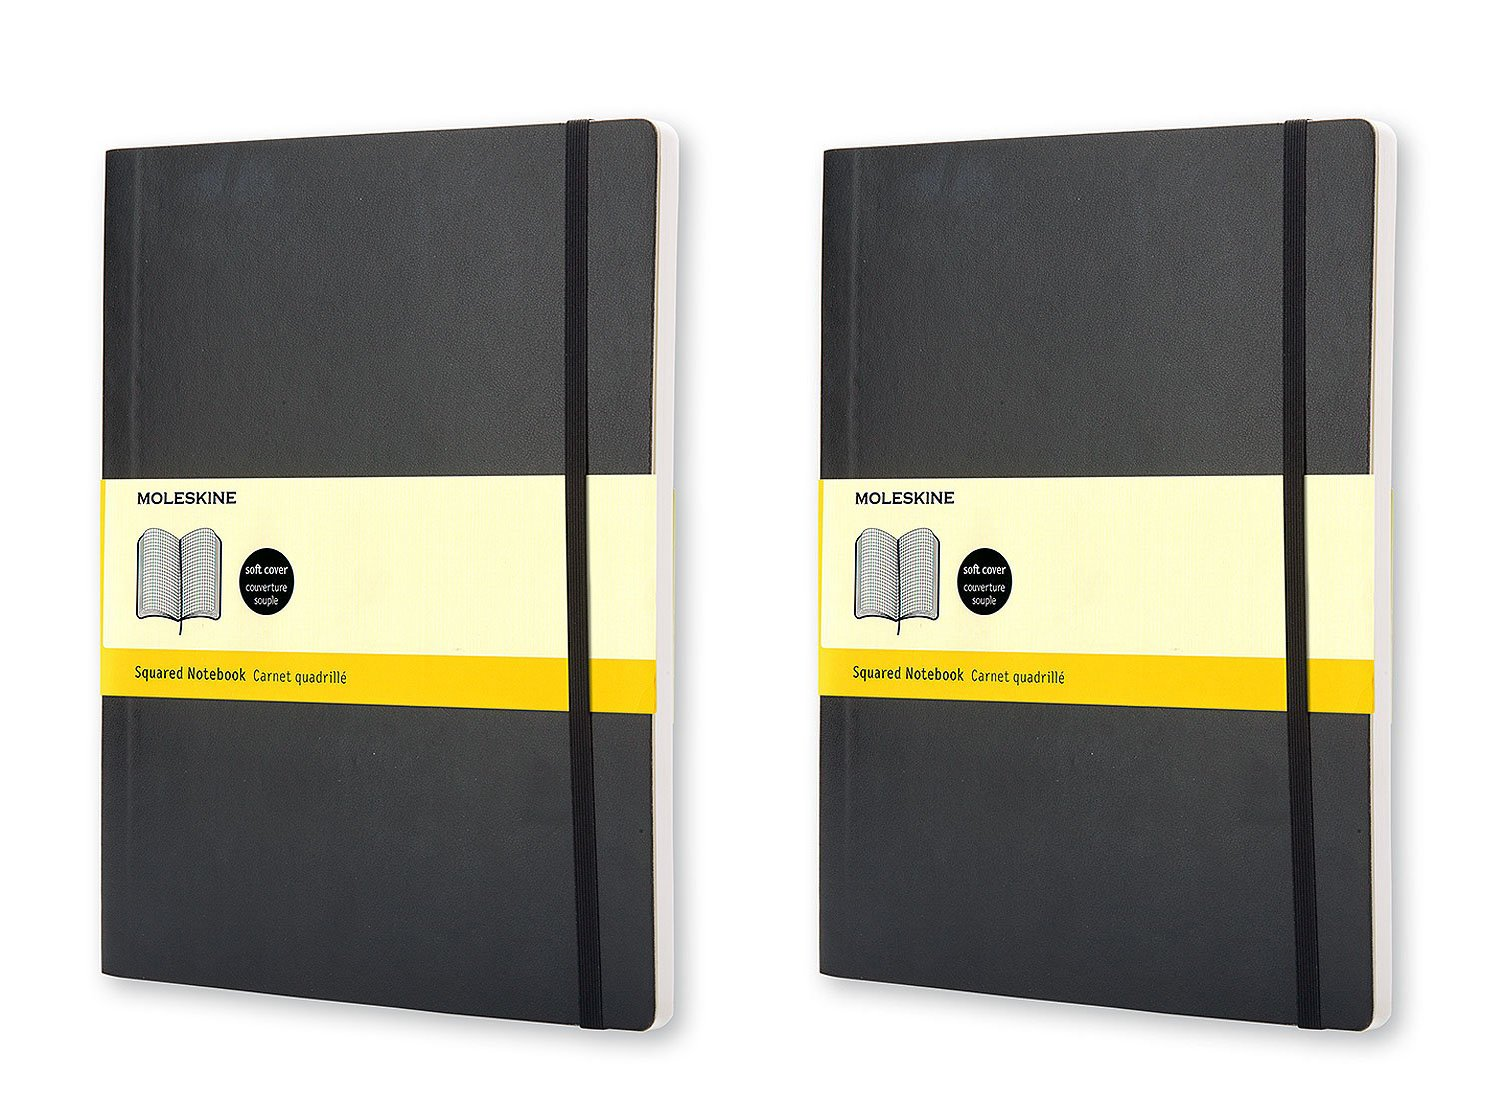 Pack of 2 Moleskine Classic Notebook, Extra Large, Squared, Black, Soft Cover (7.5 x 10) (Classic Notebooks)